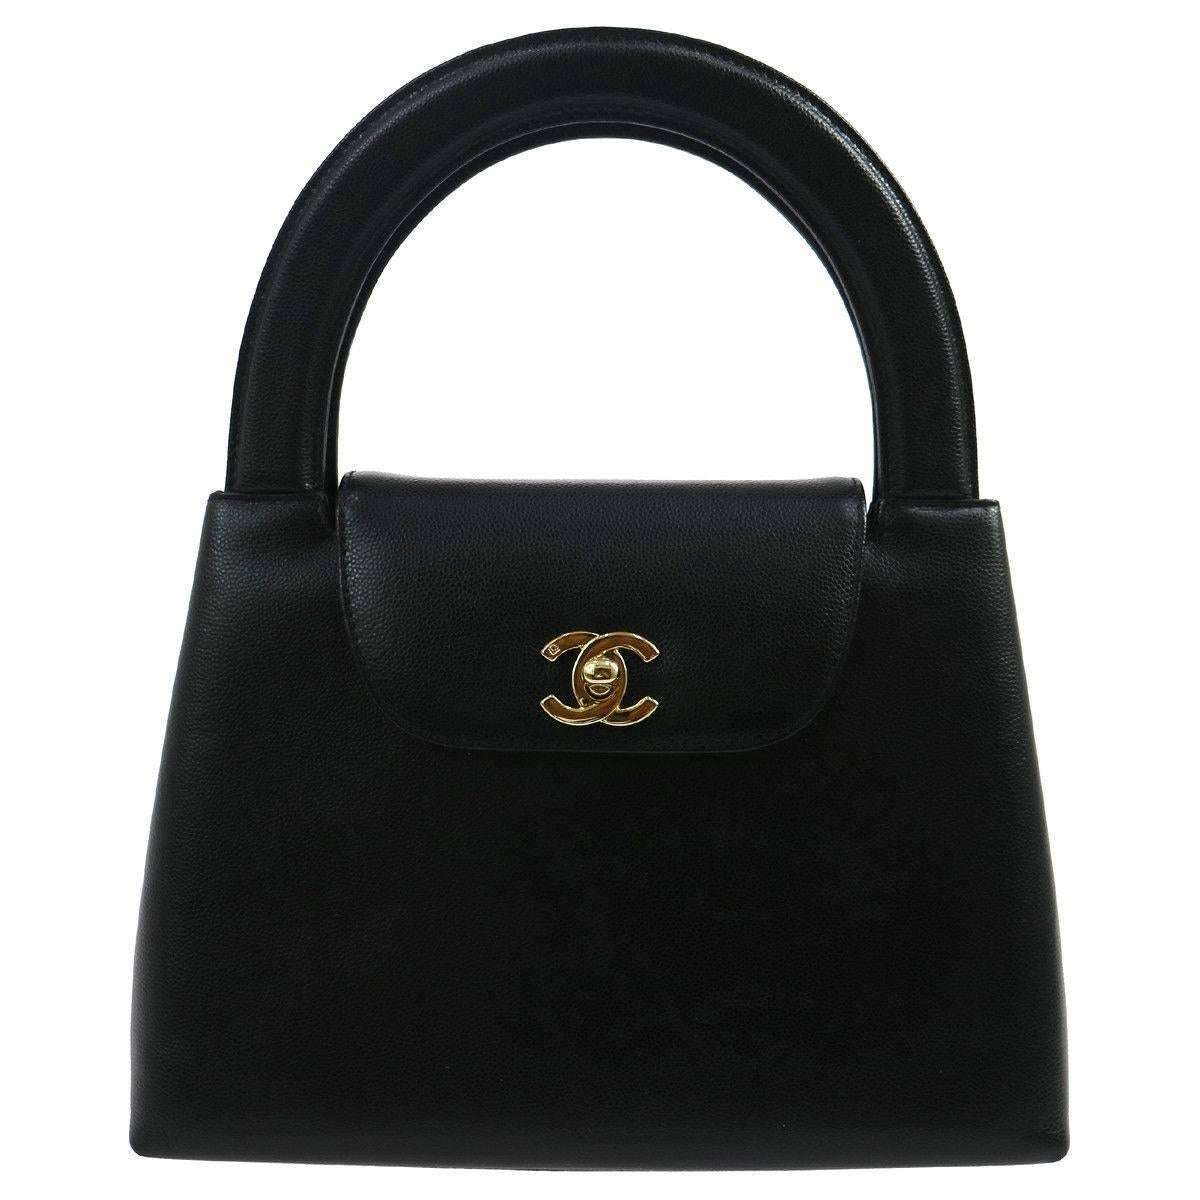 Chanel Black Leather Small Mini Party Kelly Evening Top Handle Satchel Bag